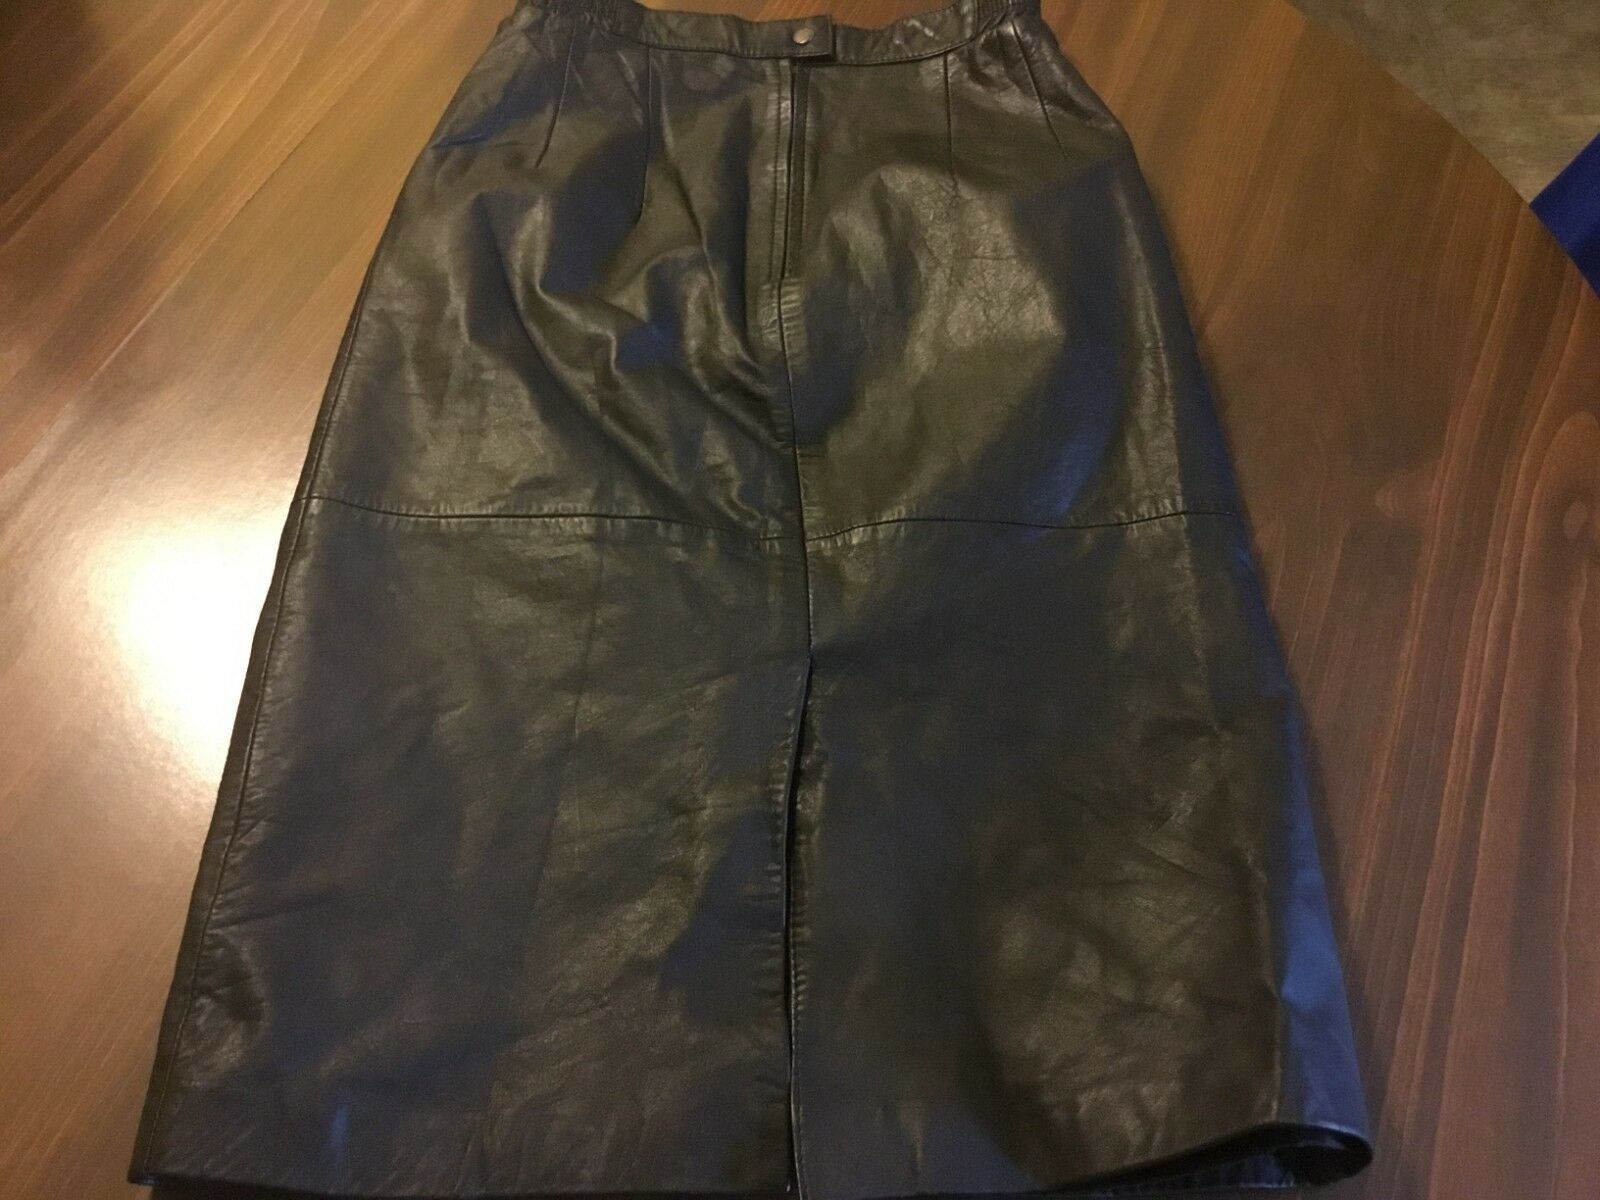 Vintage Black Real Leather PICCOLO Straight Pencil Midi Length Skirt Size UK6 W25